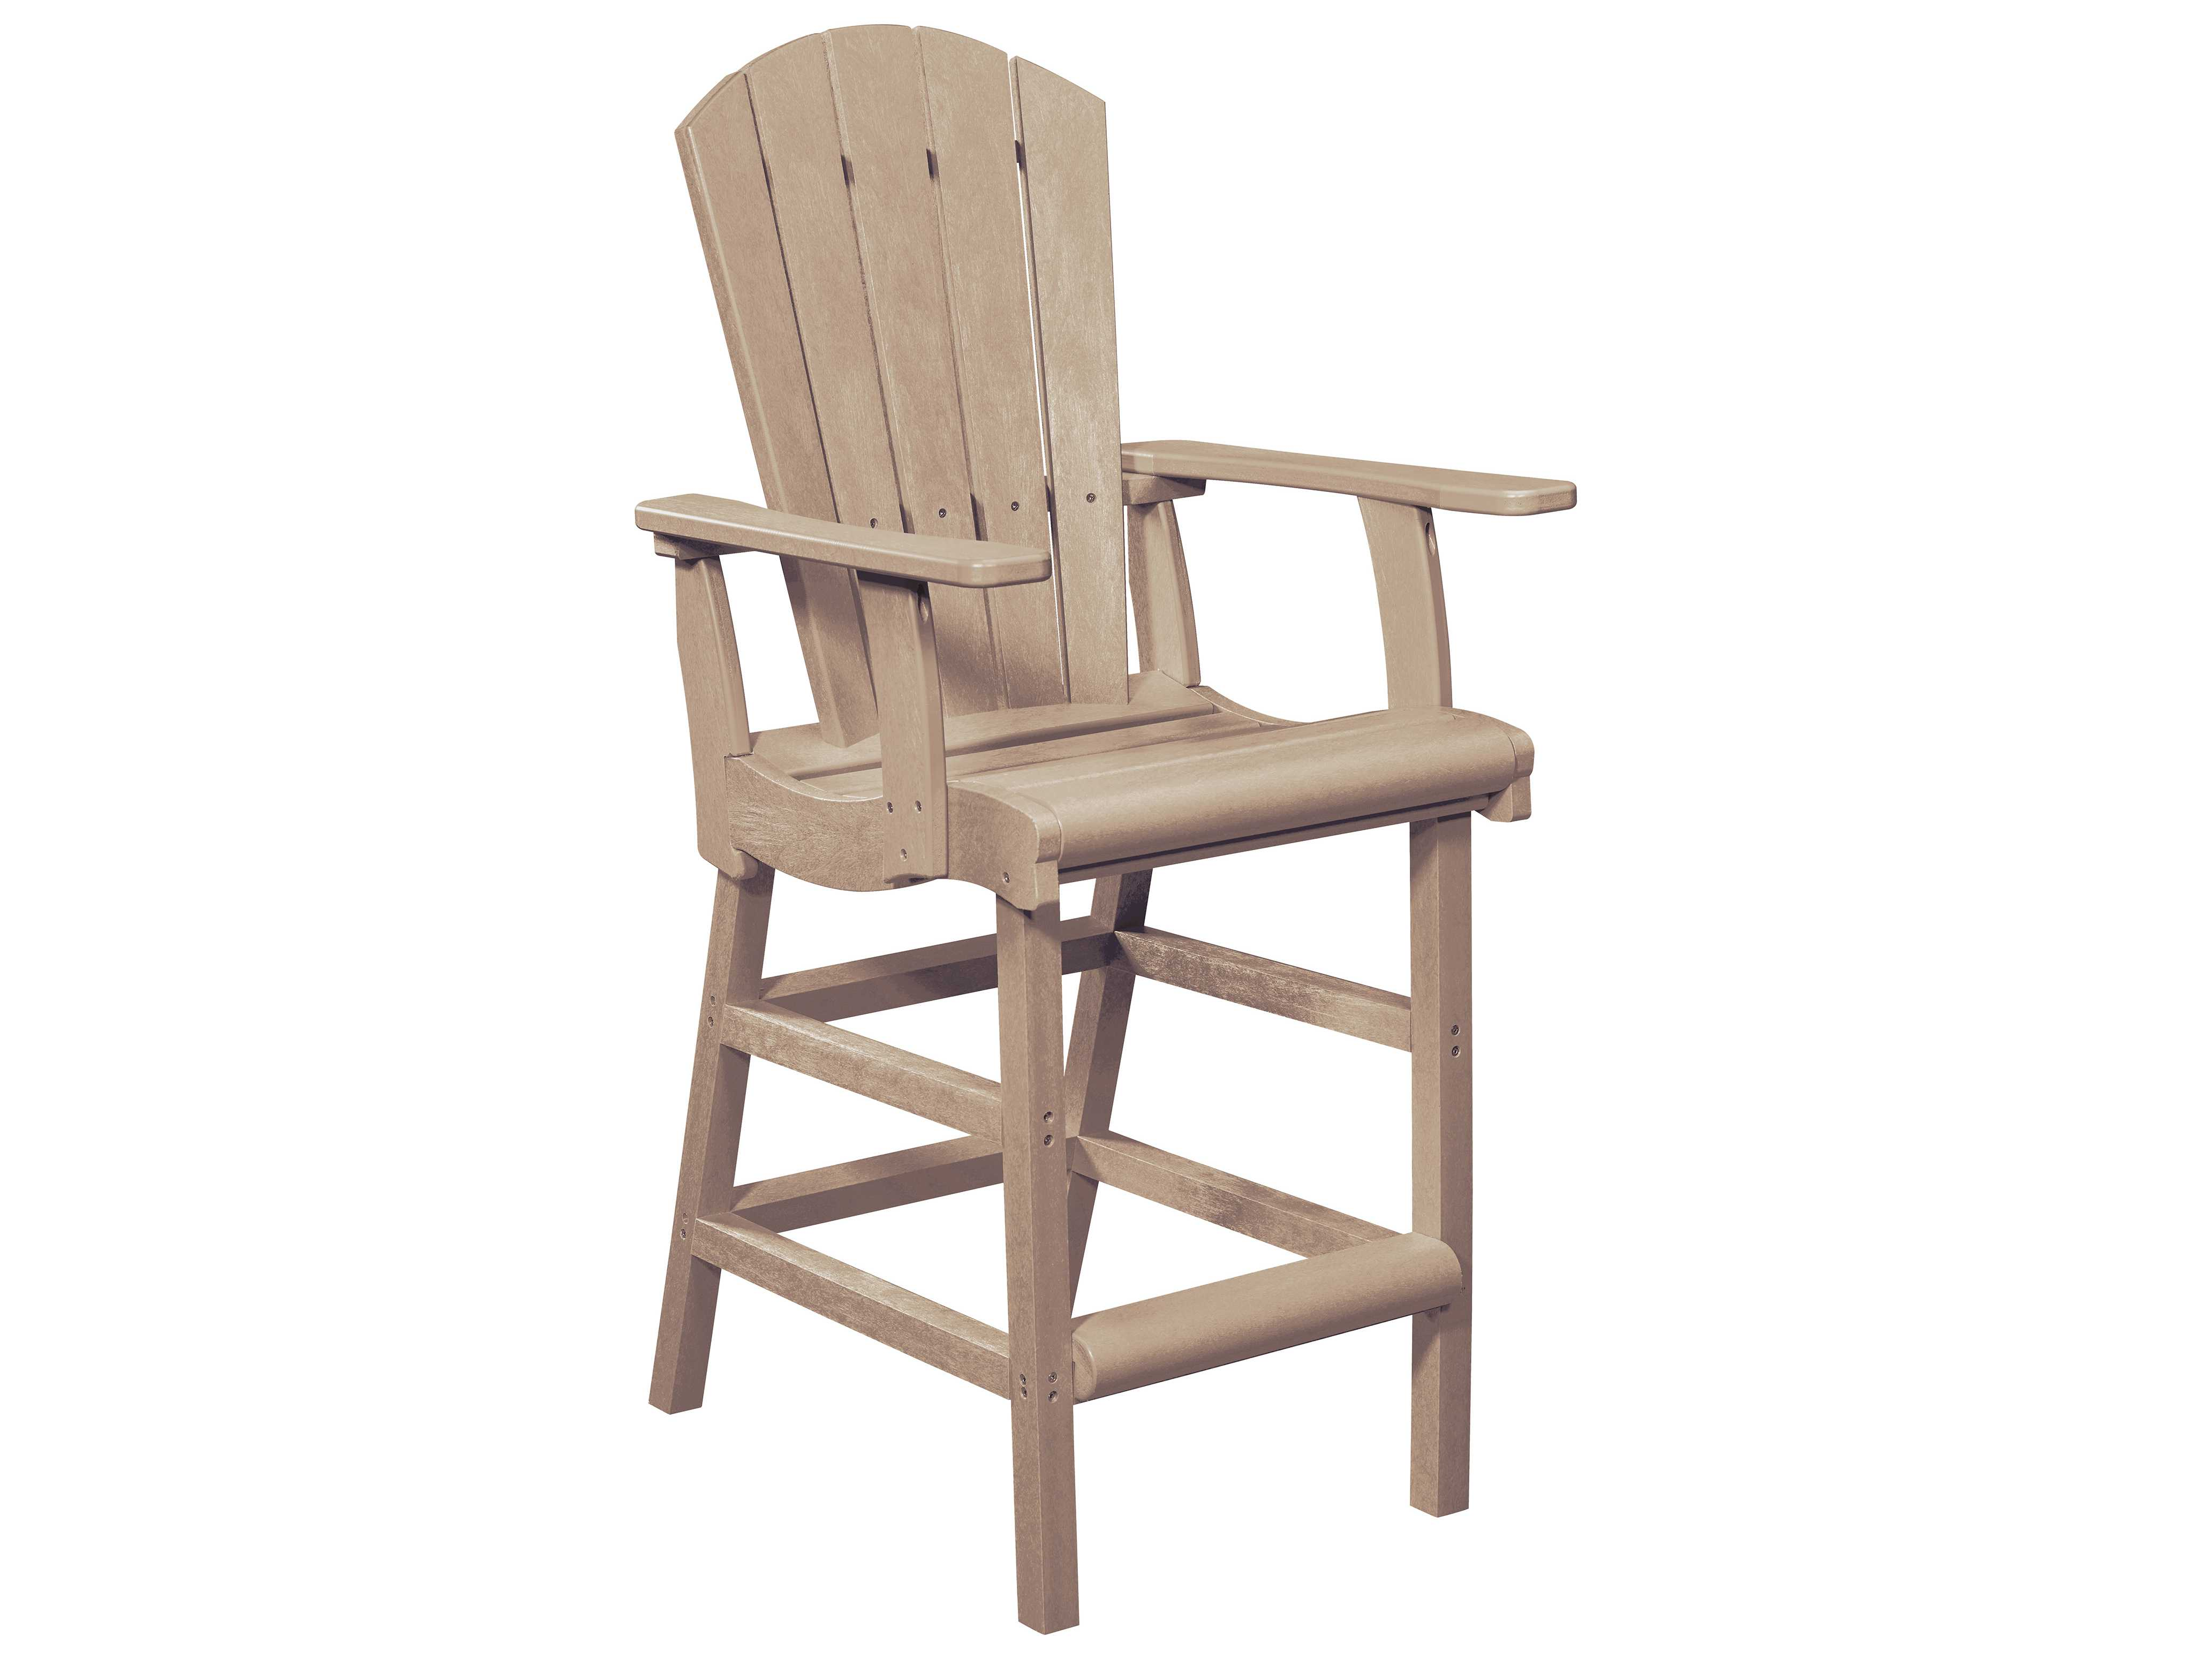 adirondack style dining chairs middy fishing chair accessories c r plastic generation recycled